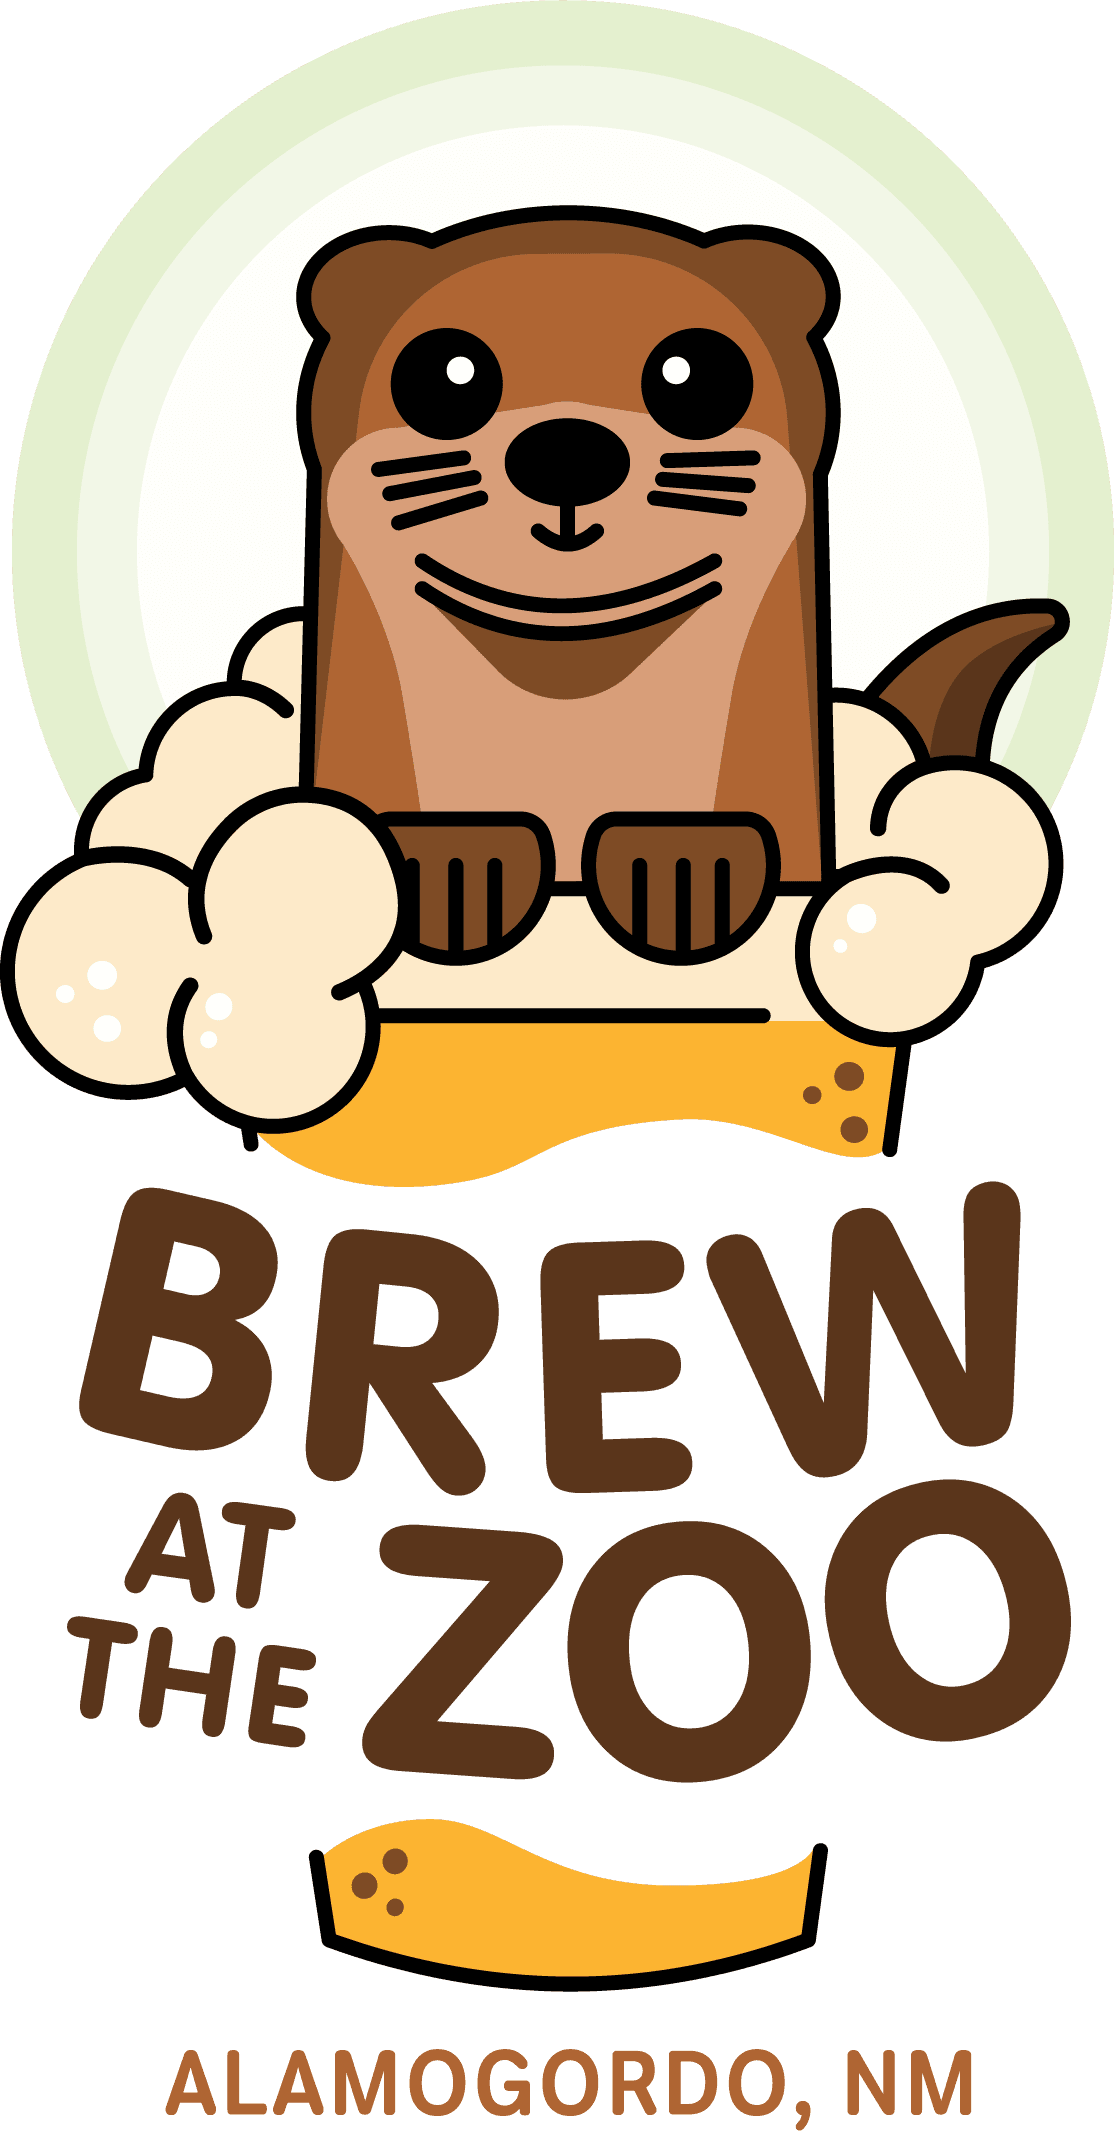 brewatthezoo-logo-full-color-rgb - Alamogordo